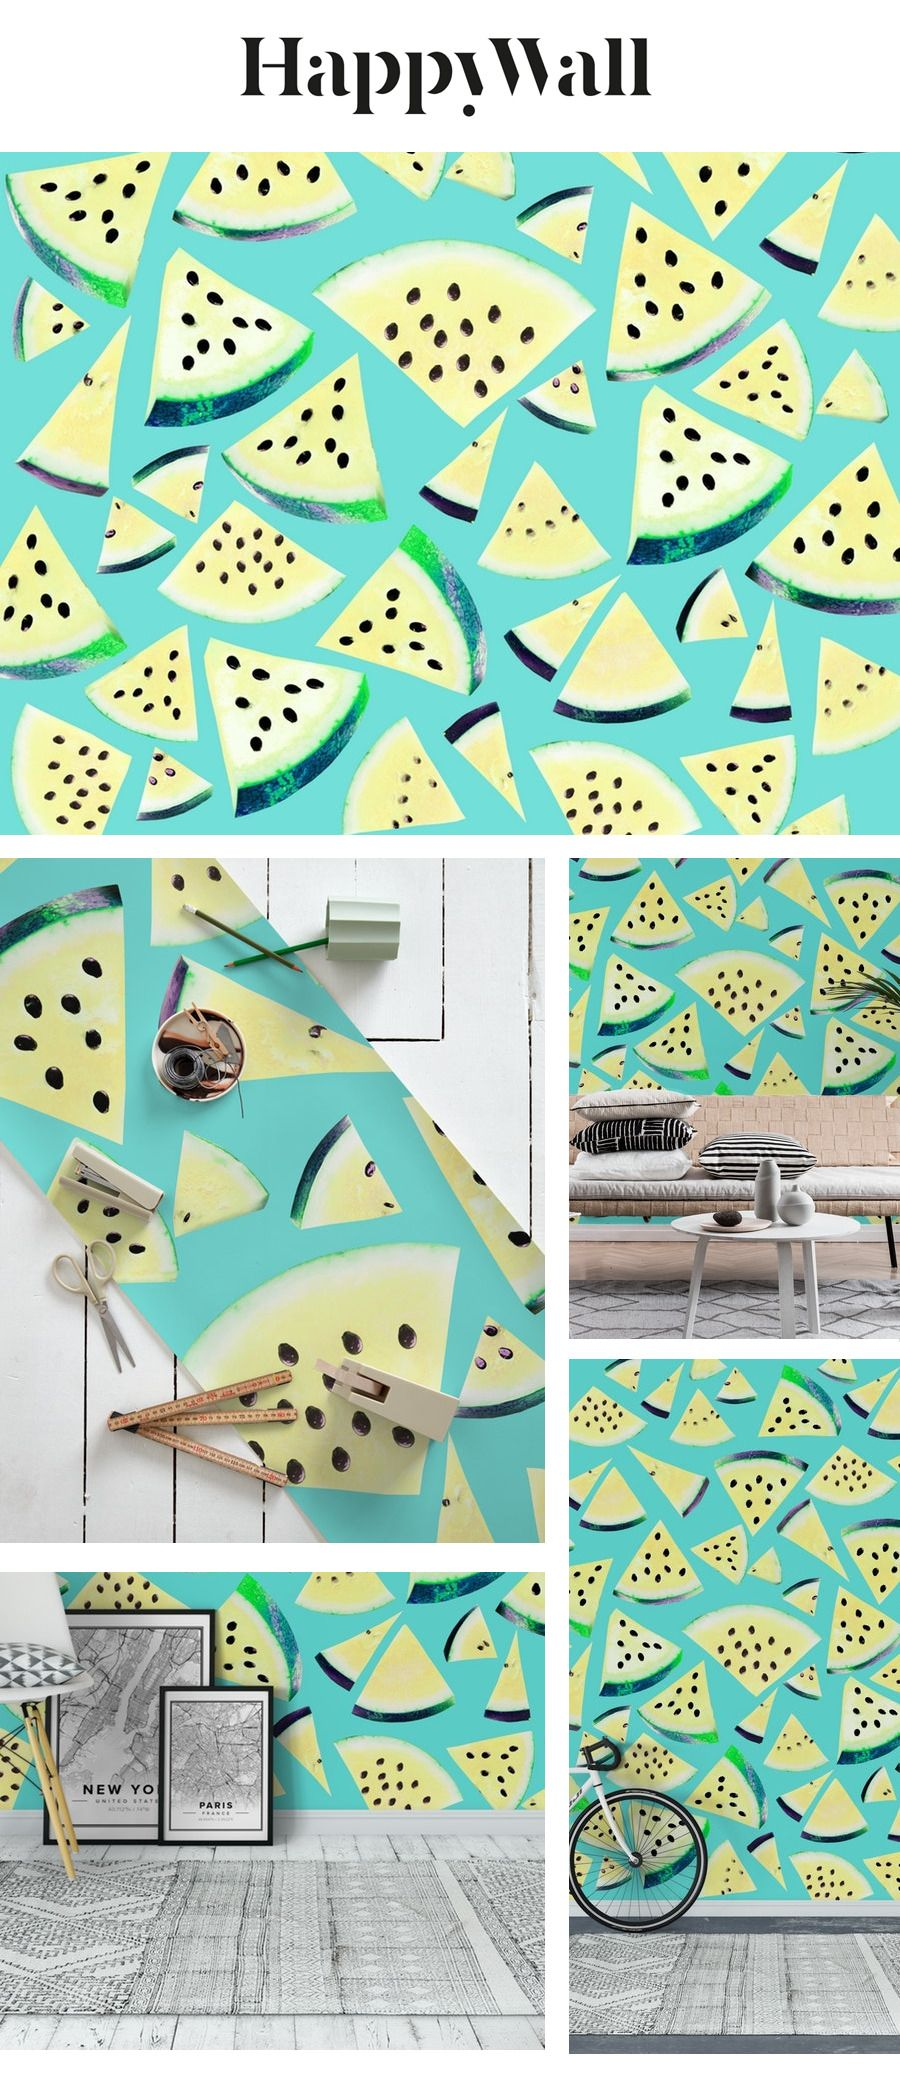 Watermelon Twist Vibes 4 wall mural from Happywall